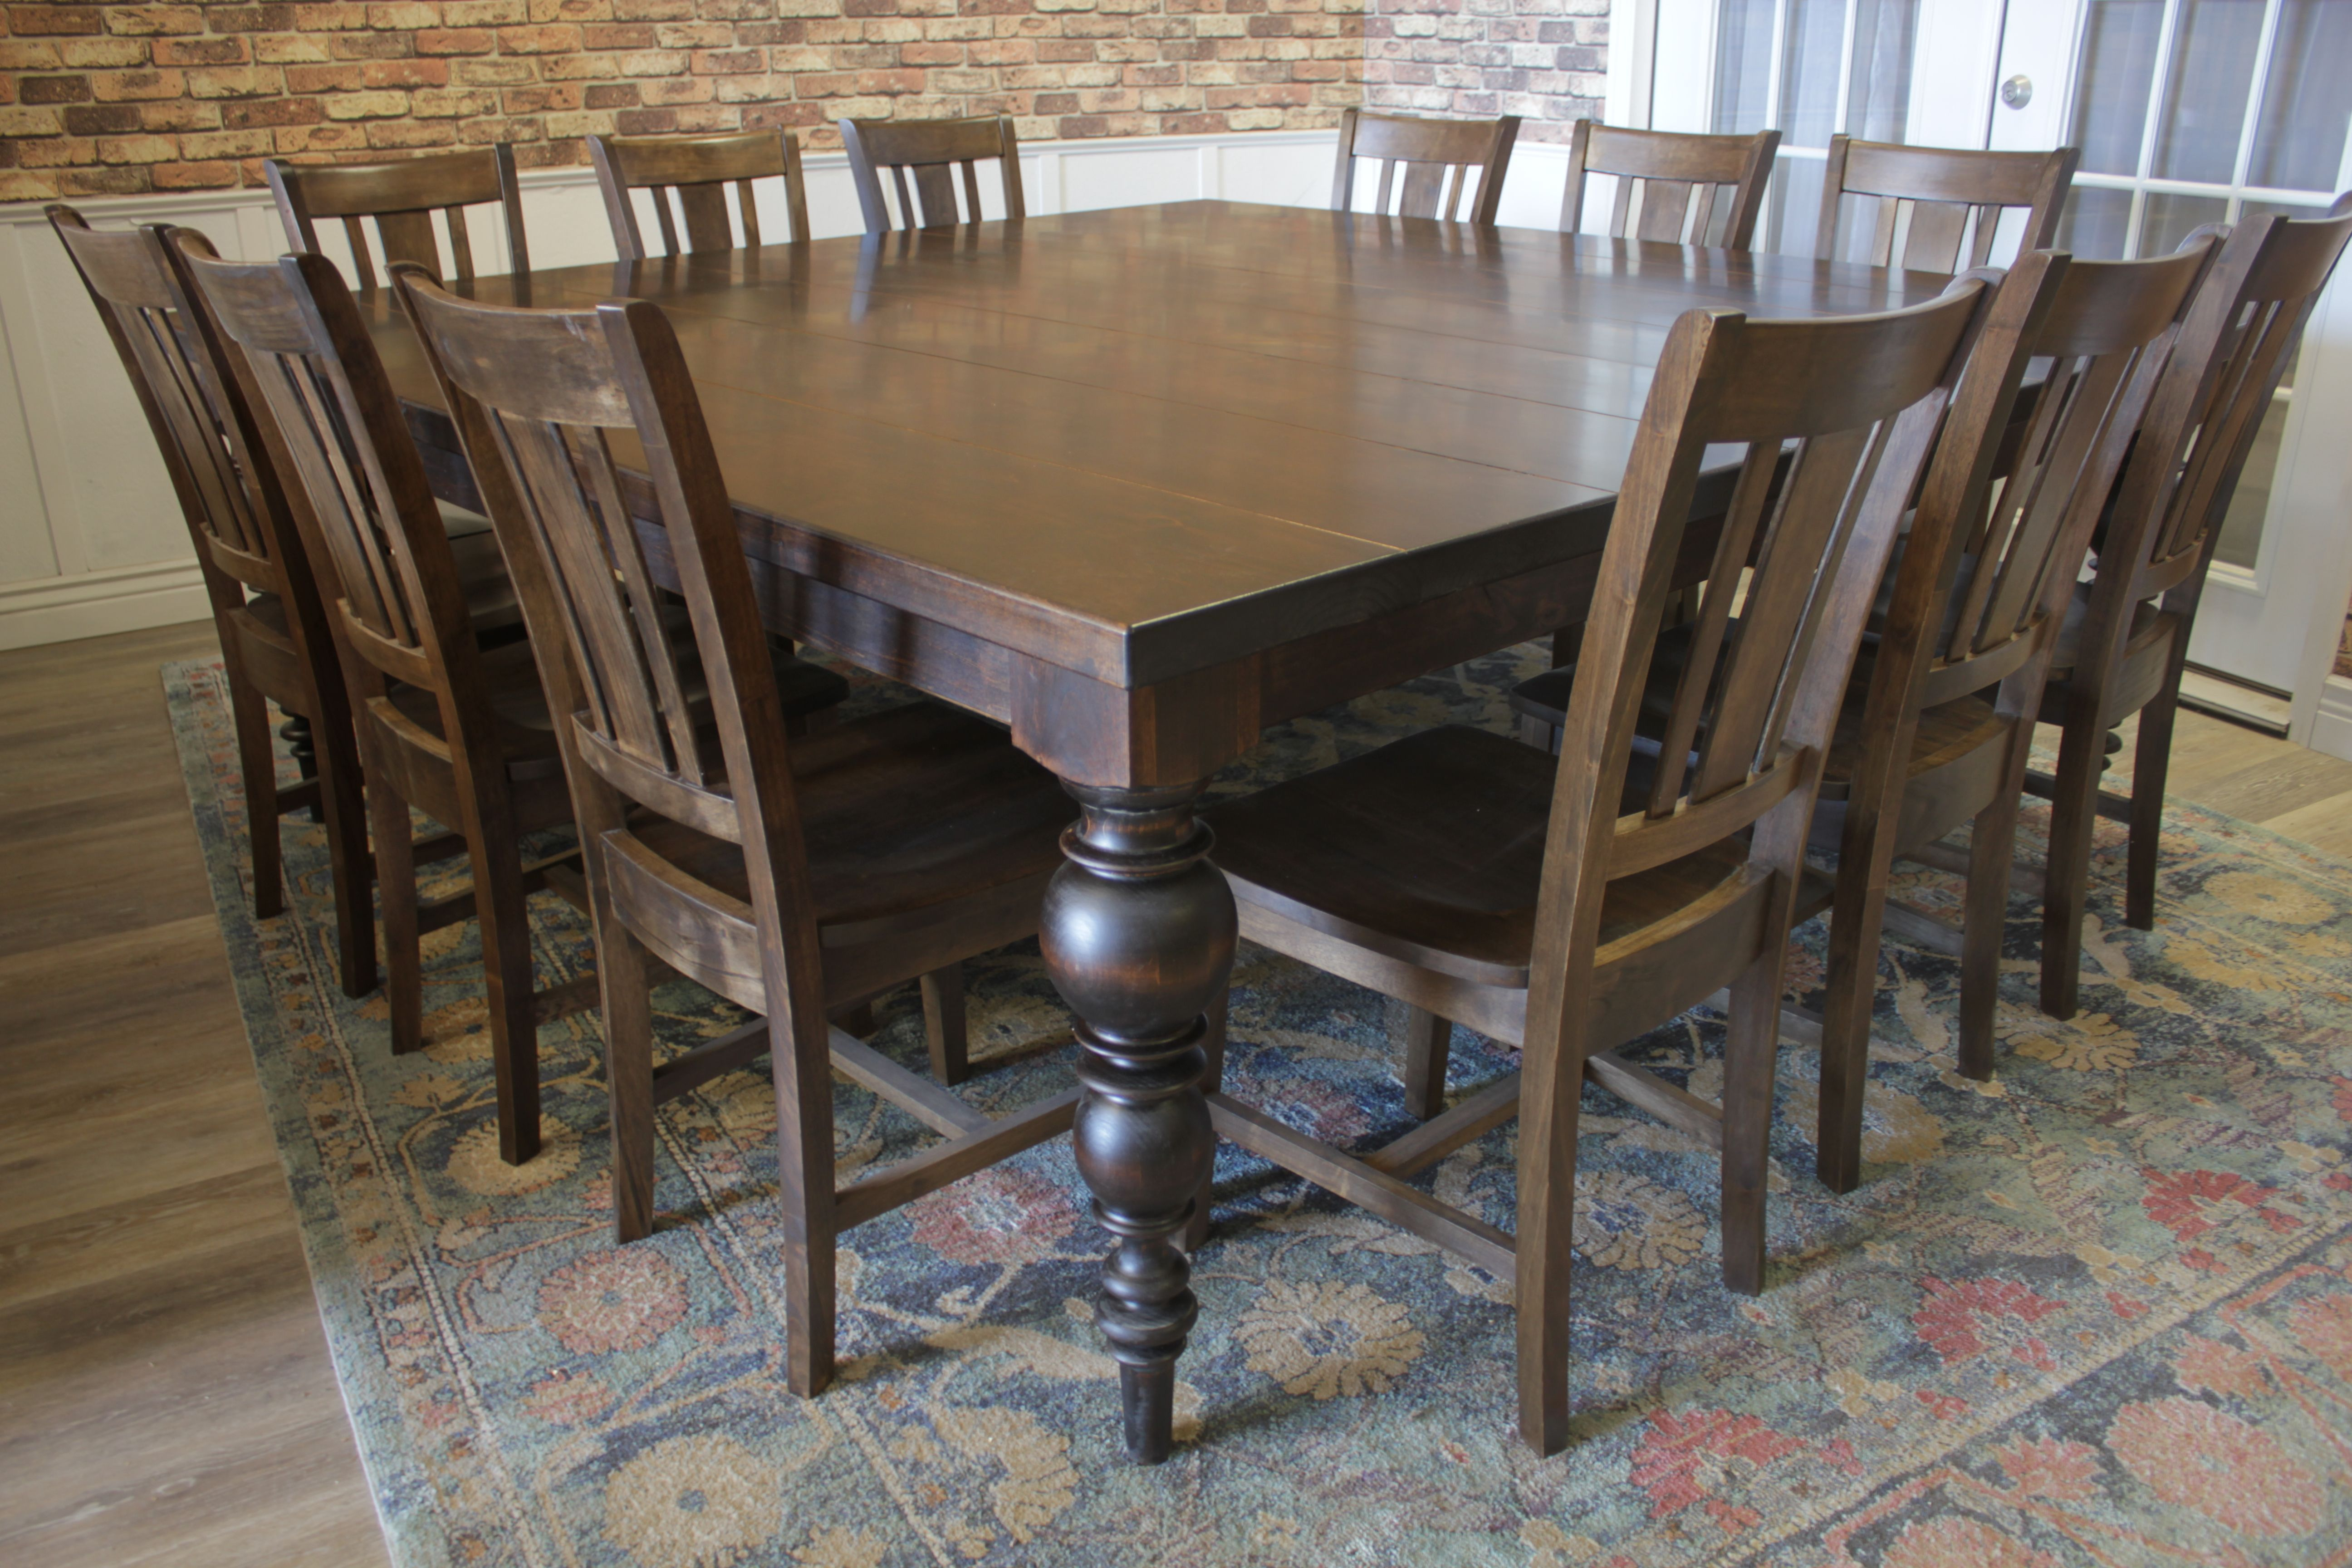 This Large Square Dining Table For 12 Makes Entertaining Friends And Family Look Effortless Gather 12 Guests Ar Table For 12 Dining Table Square Dining Tables